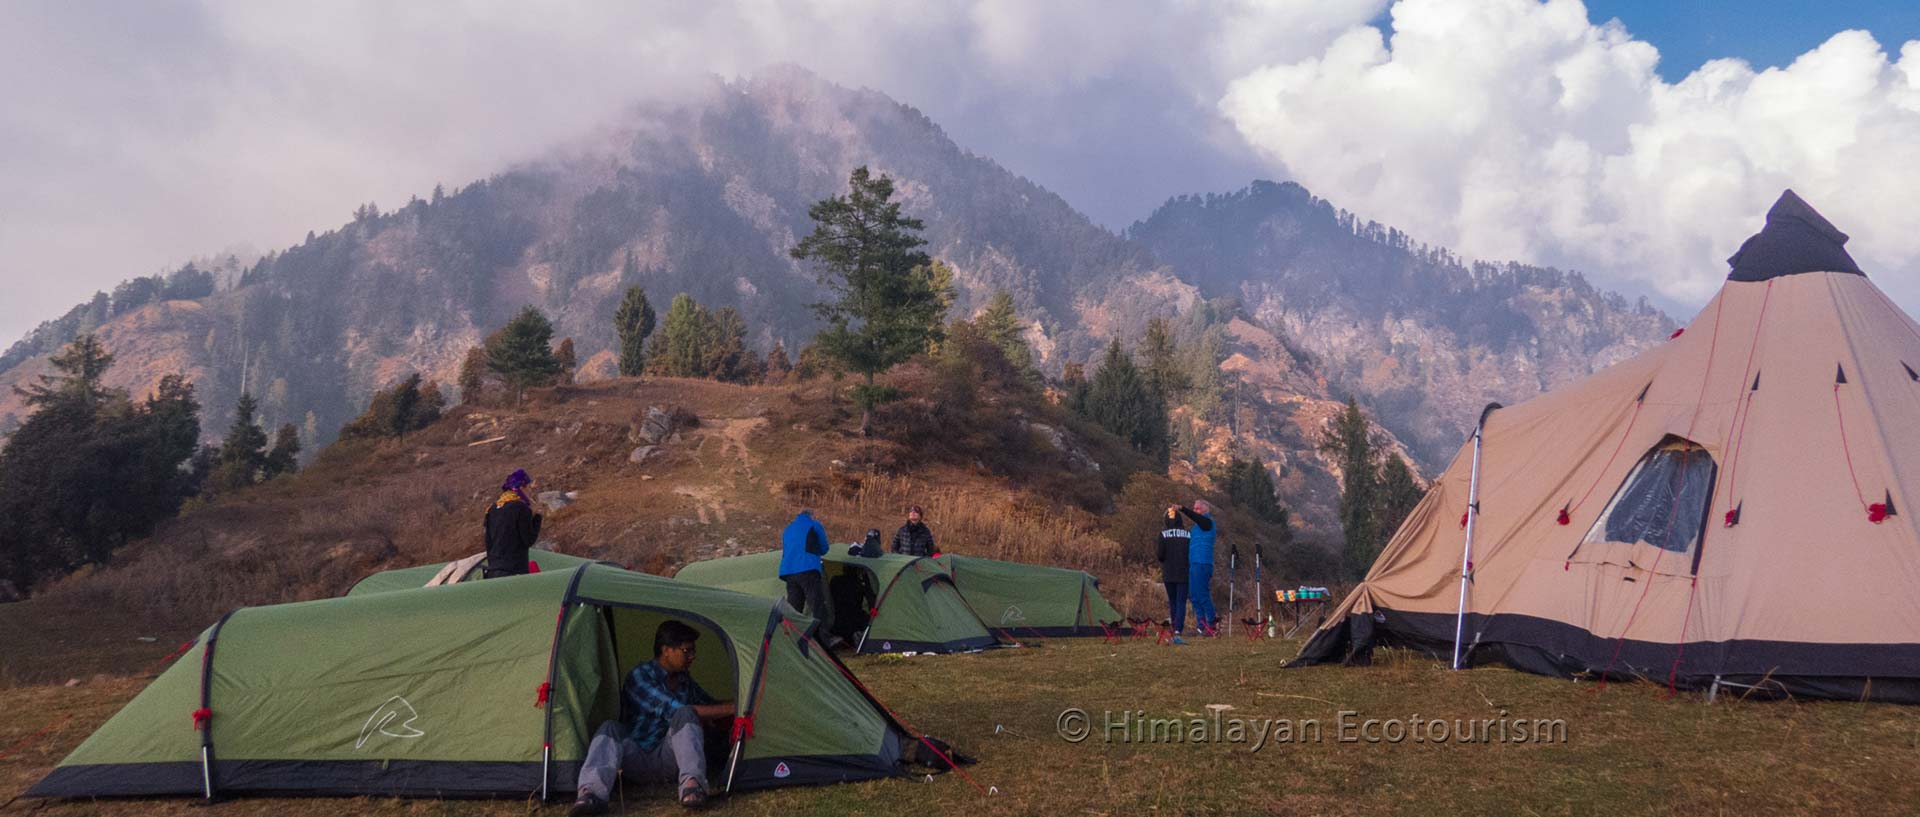 Camping at Rangthar in the Great Himalayan National Park GHNP